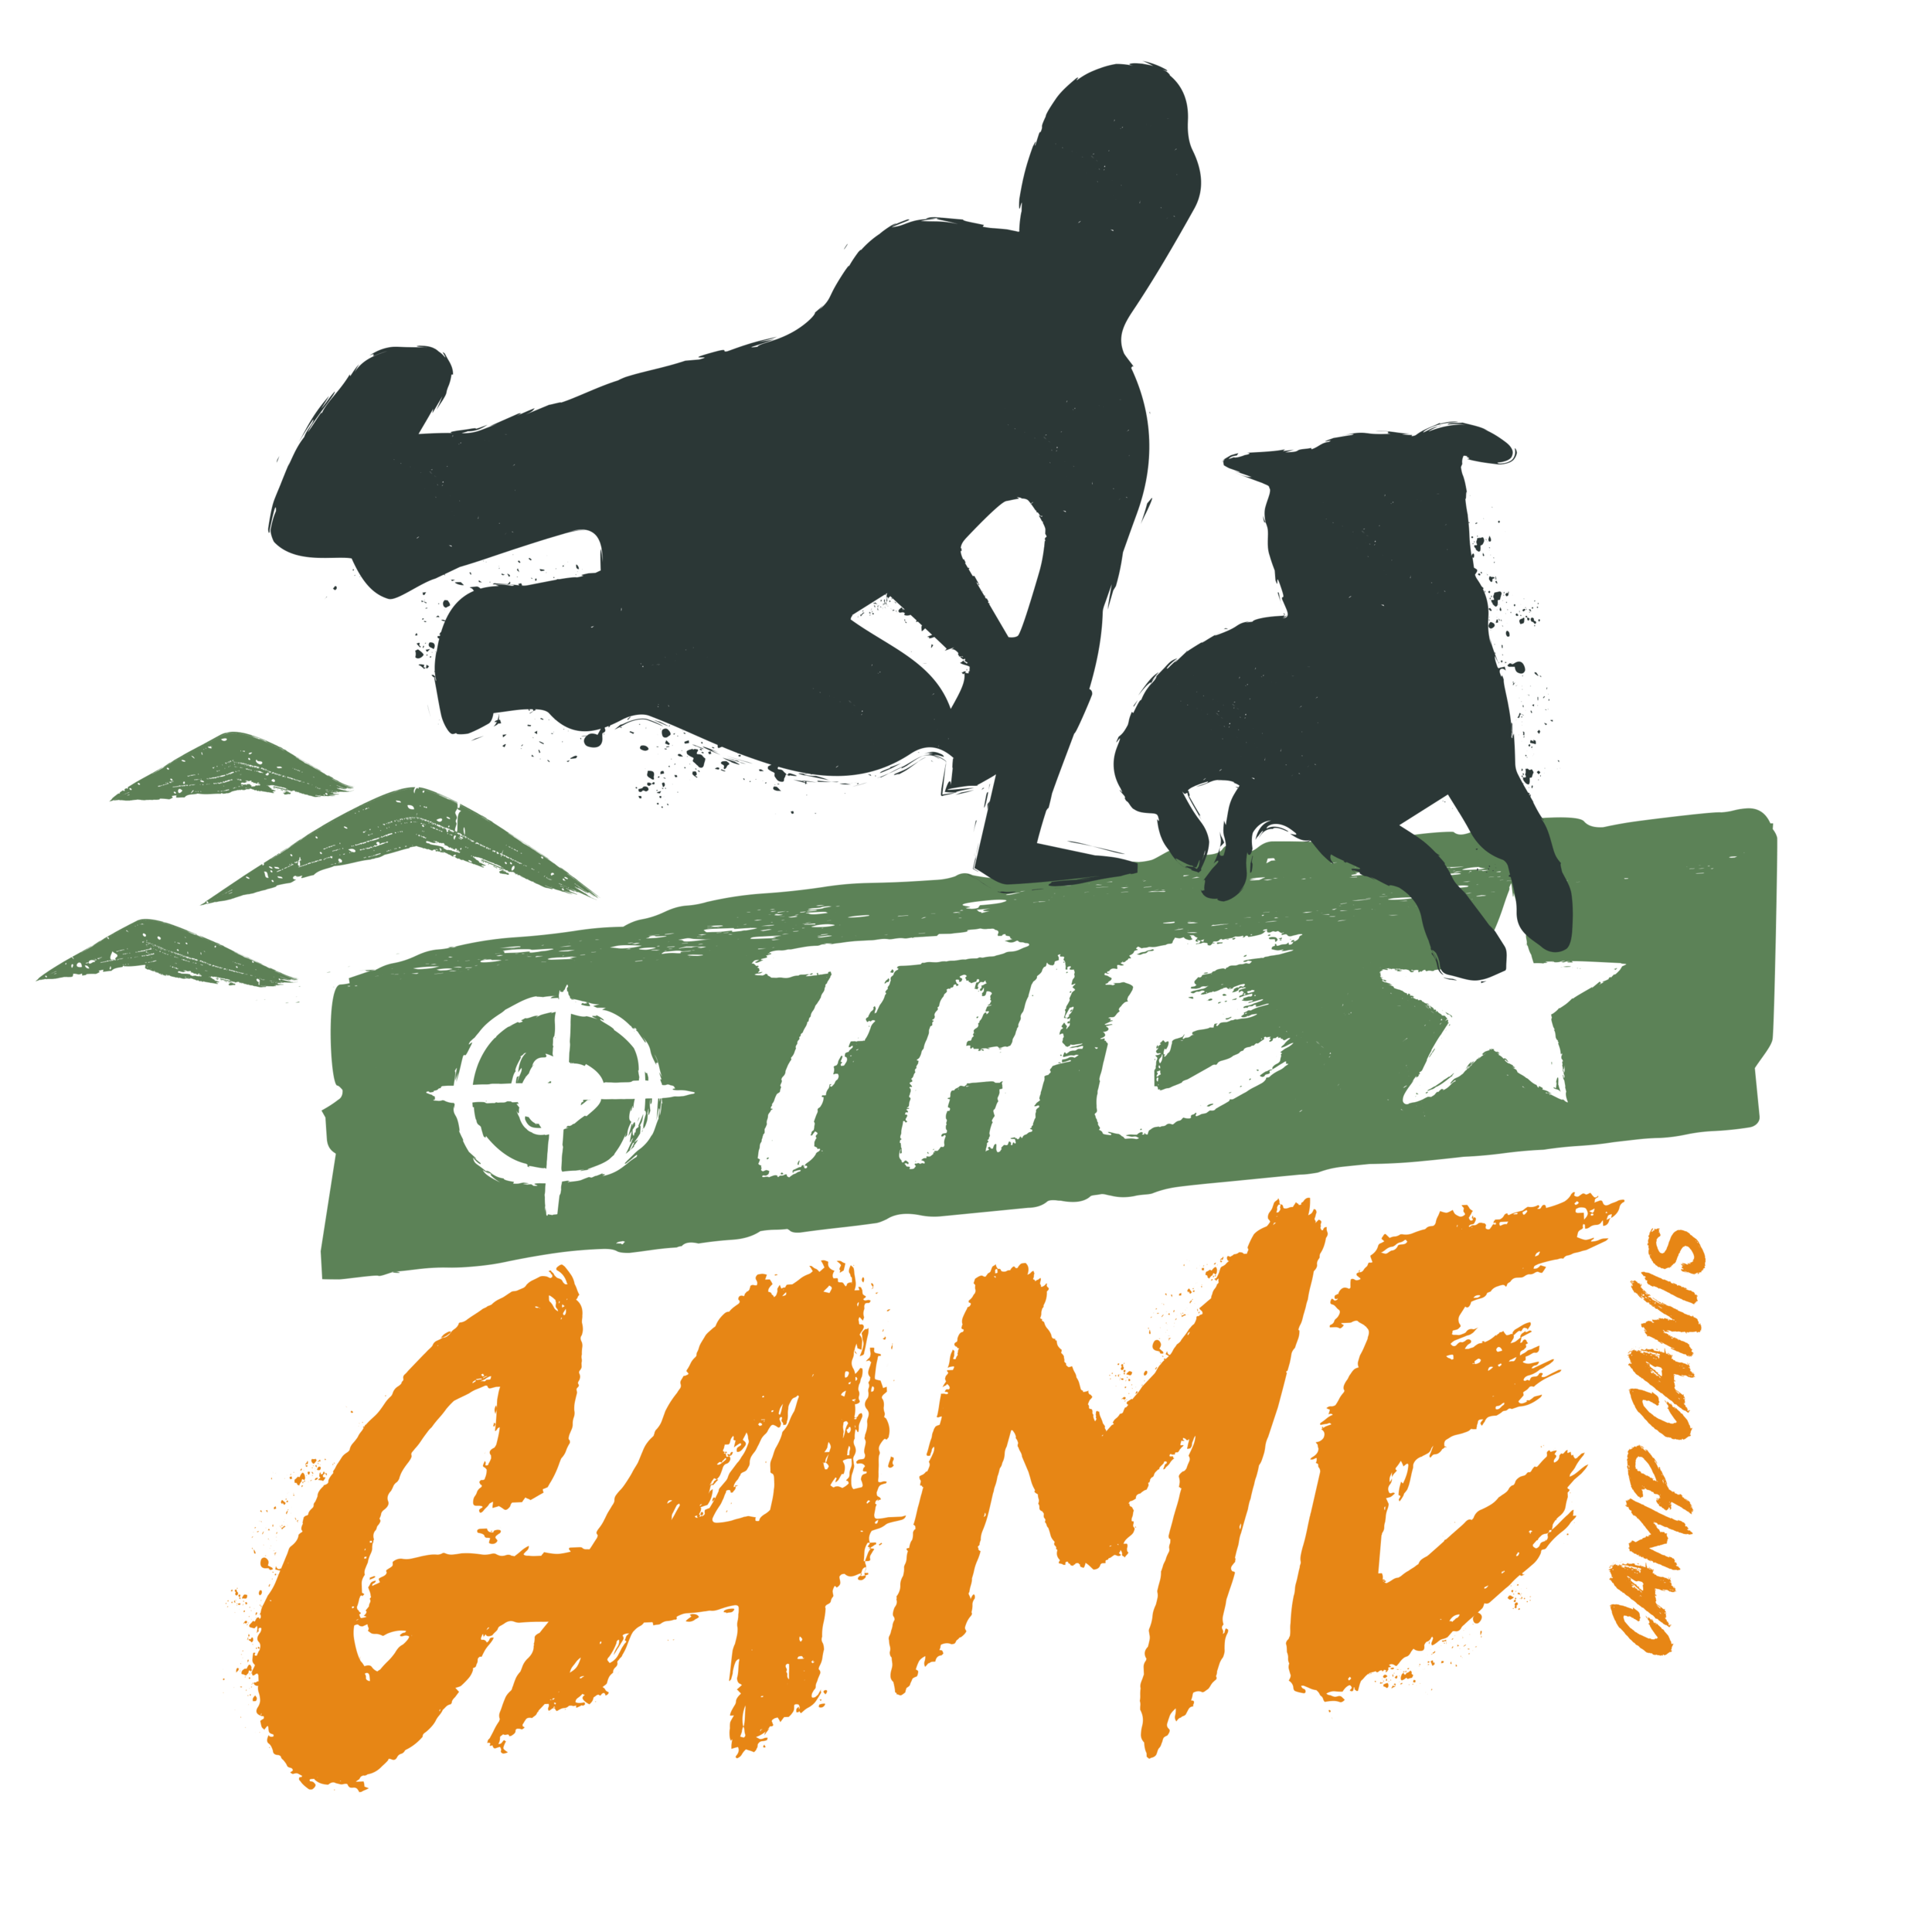 THE GAME by Camp Canis